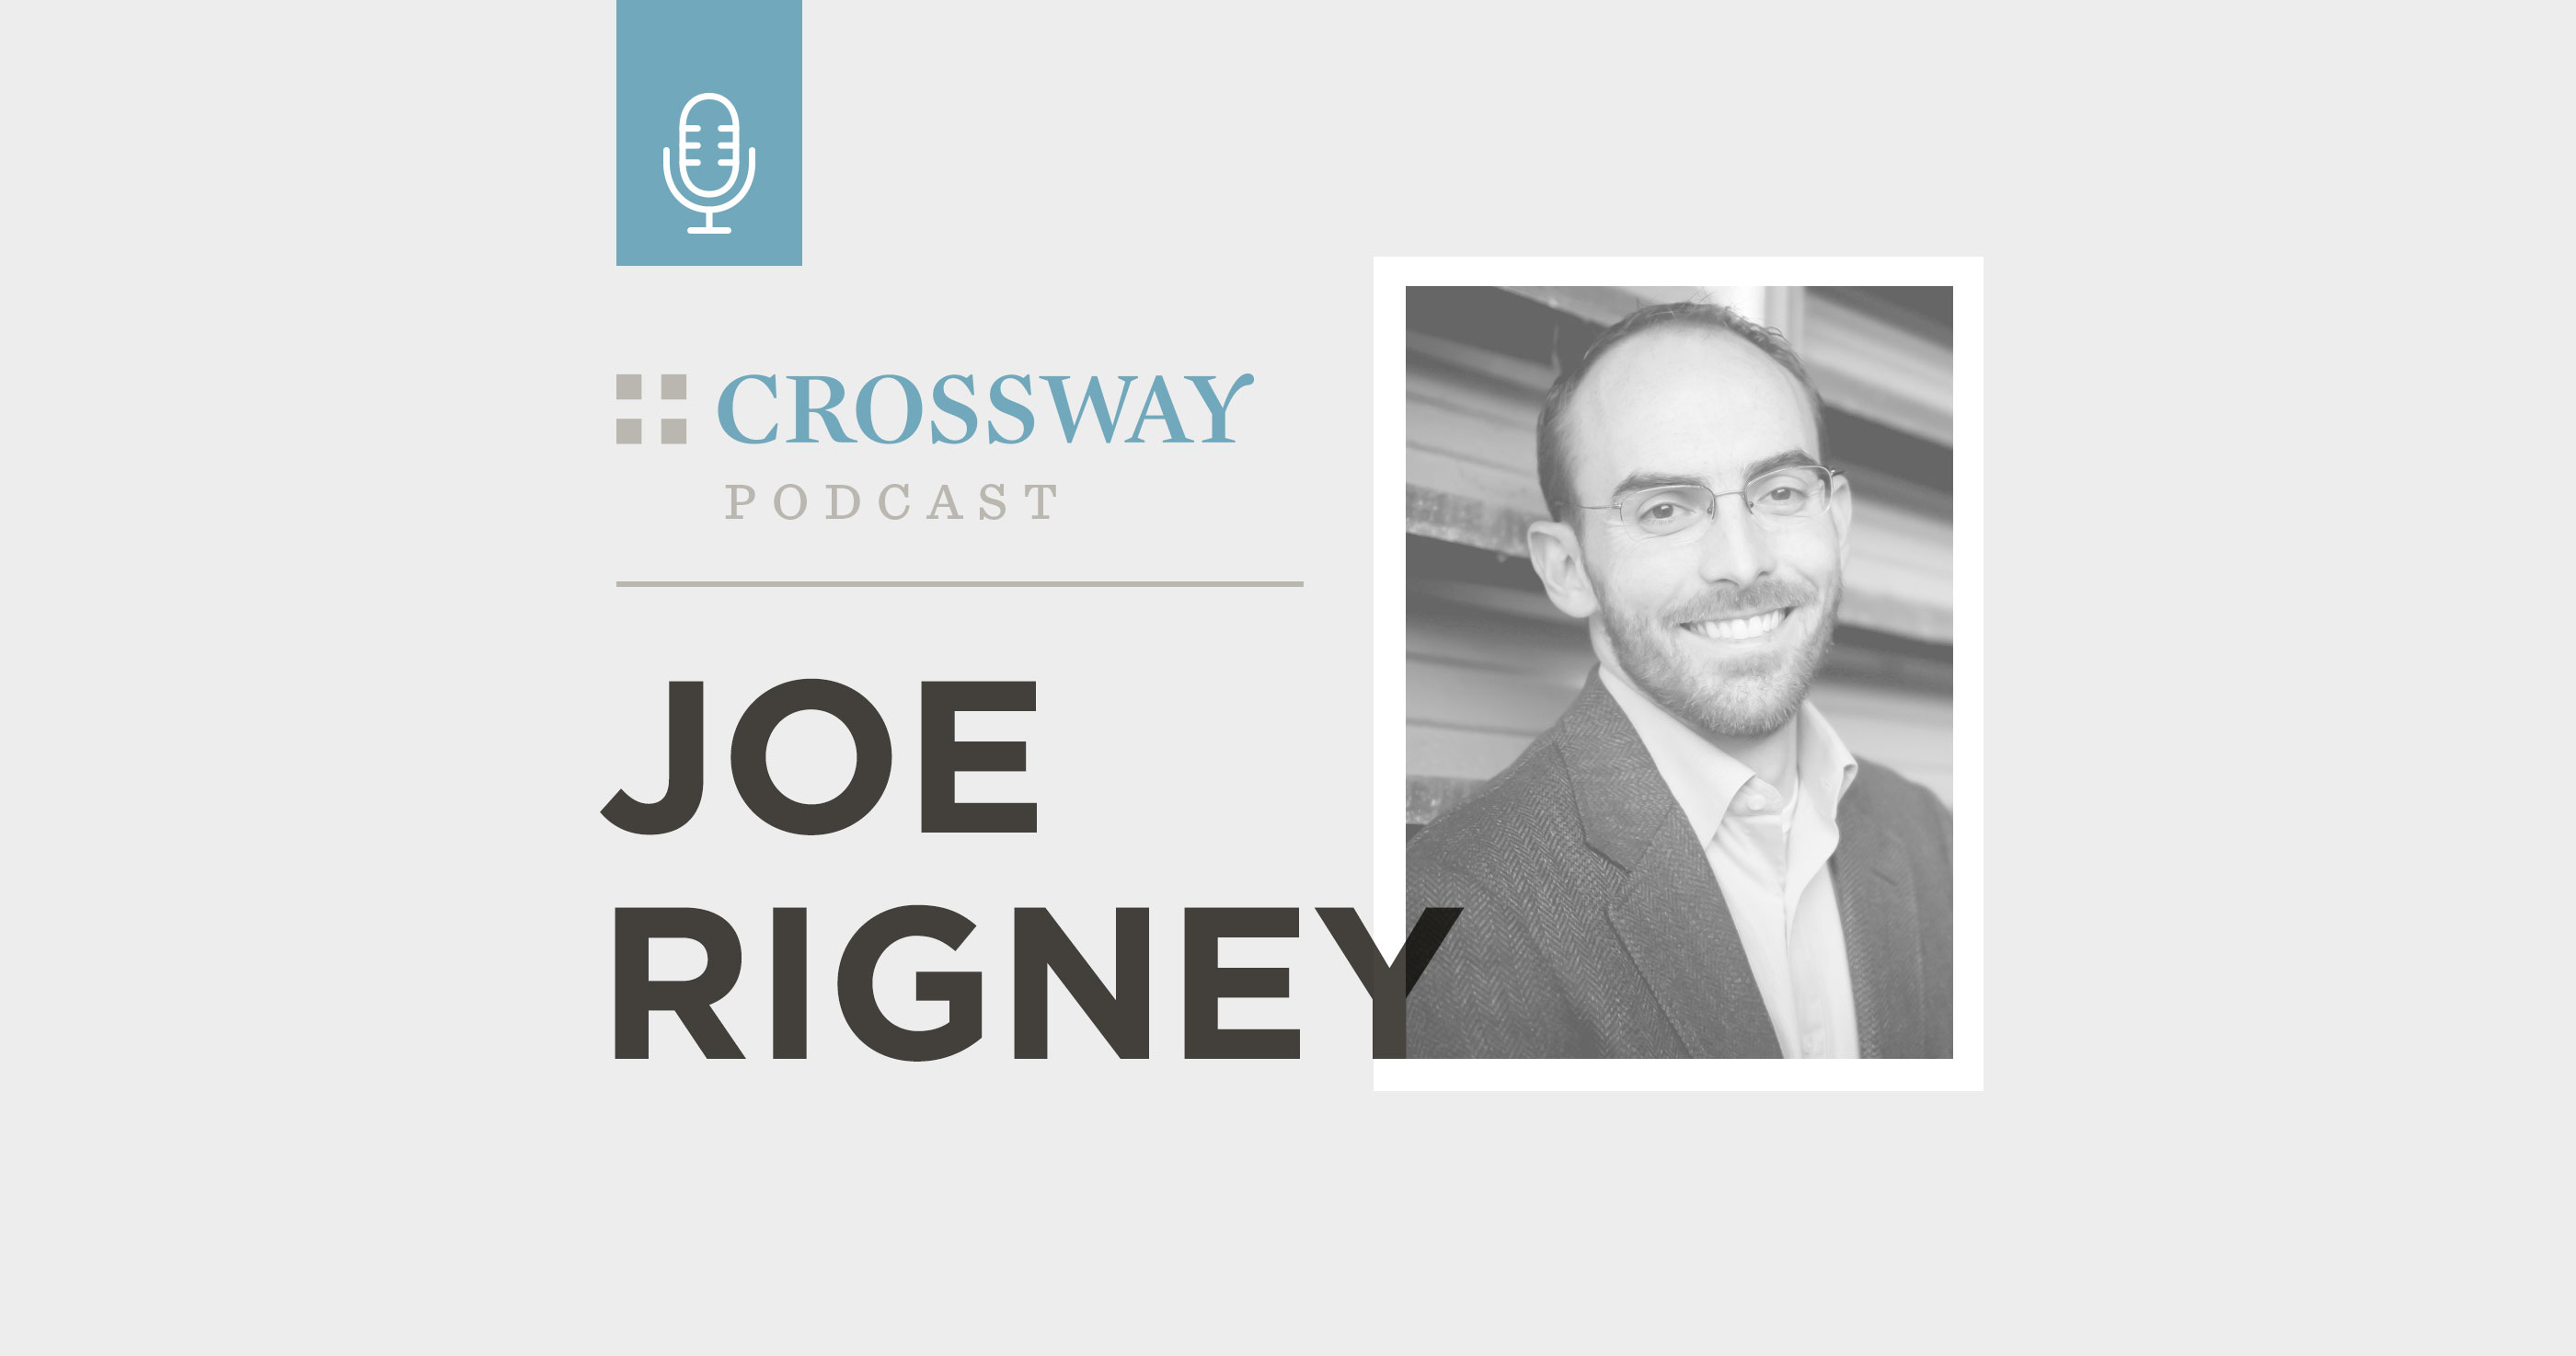 Podcast: C. S. Lewis on Truth, Beauty, and the Human Heart (Joe Rigney)